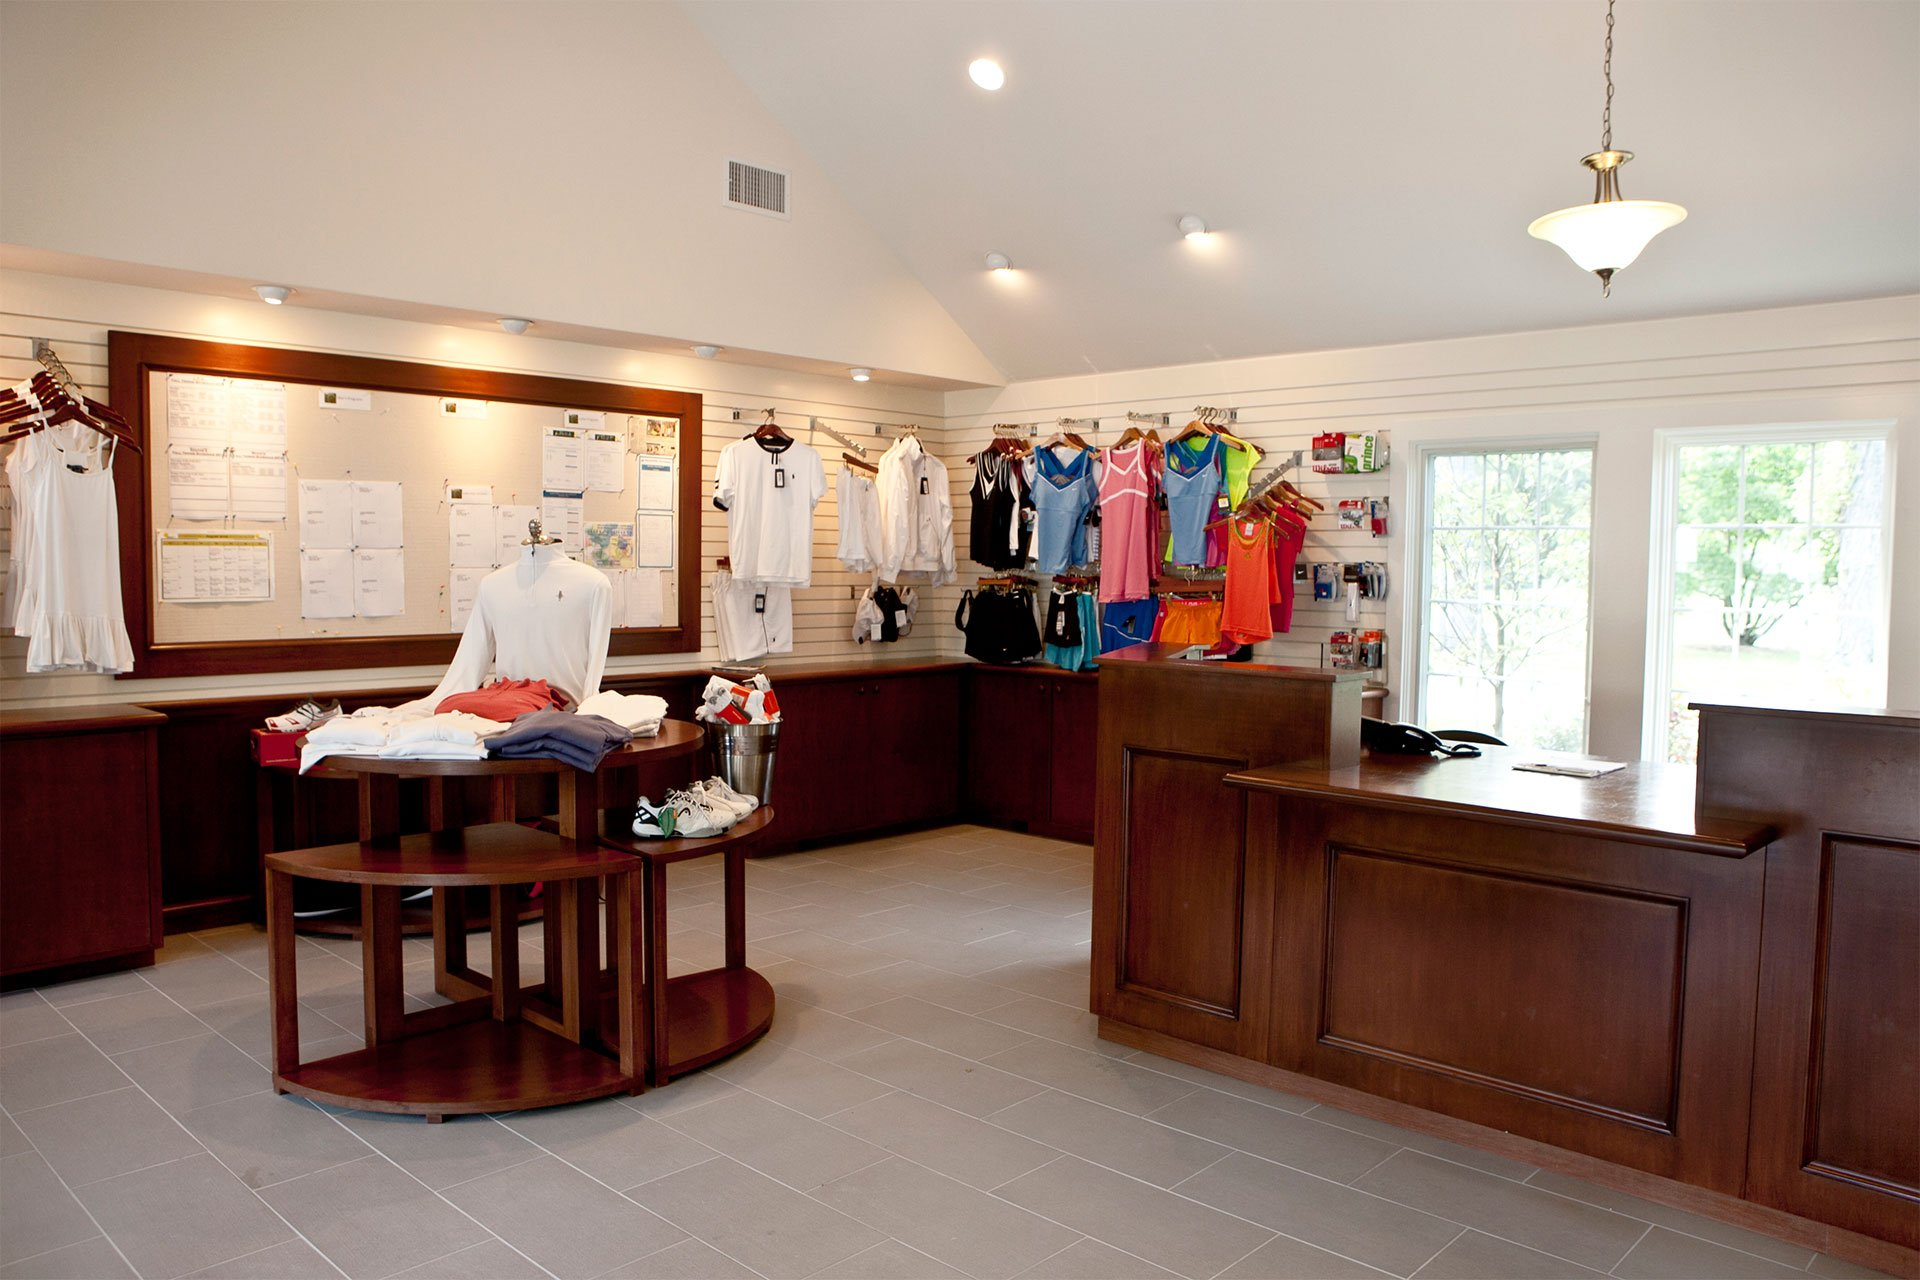 murphy-brothers-contracting-commercial-commercial-quaker-ridge-interior-golf-shop-retail